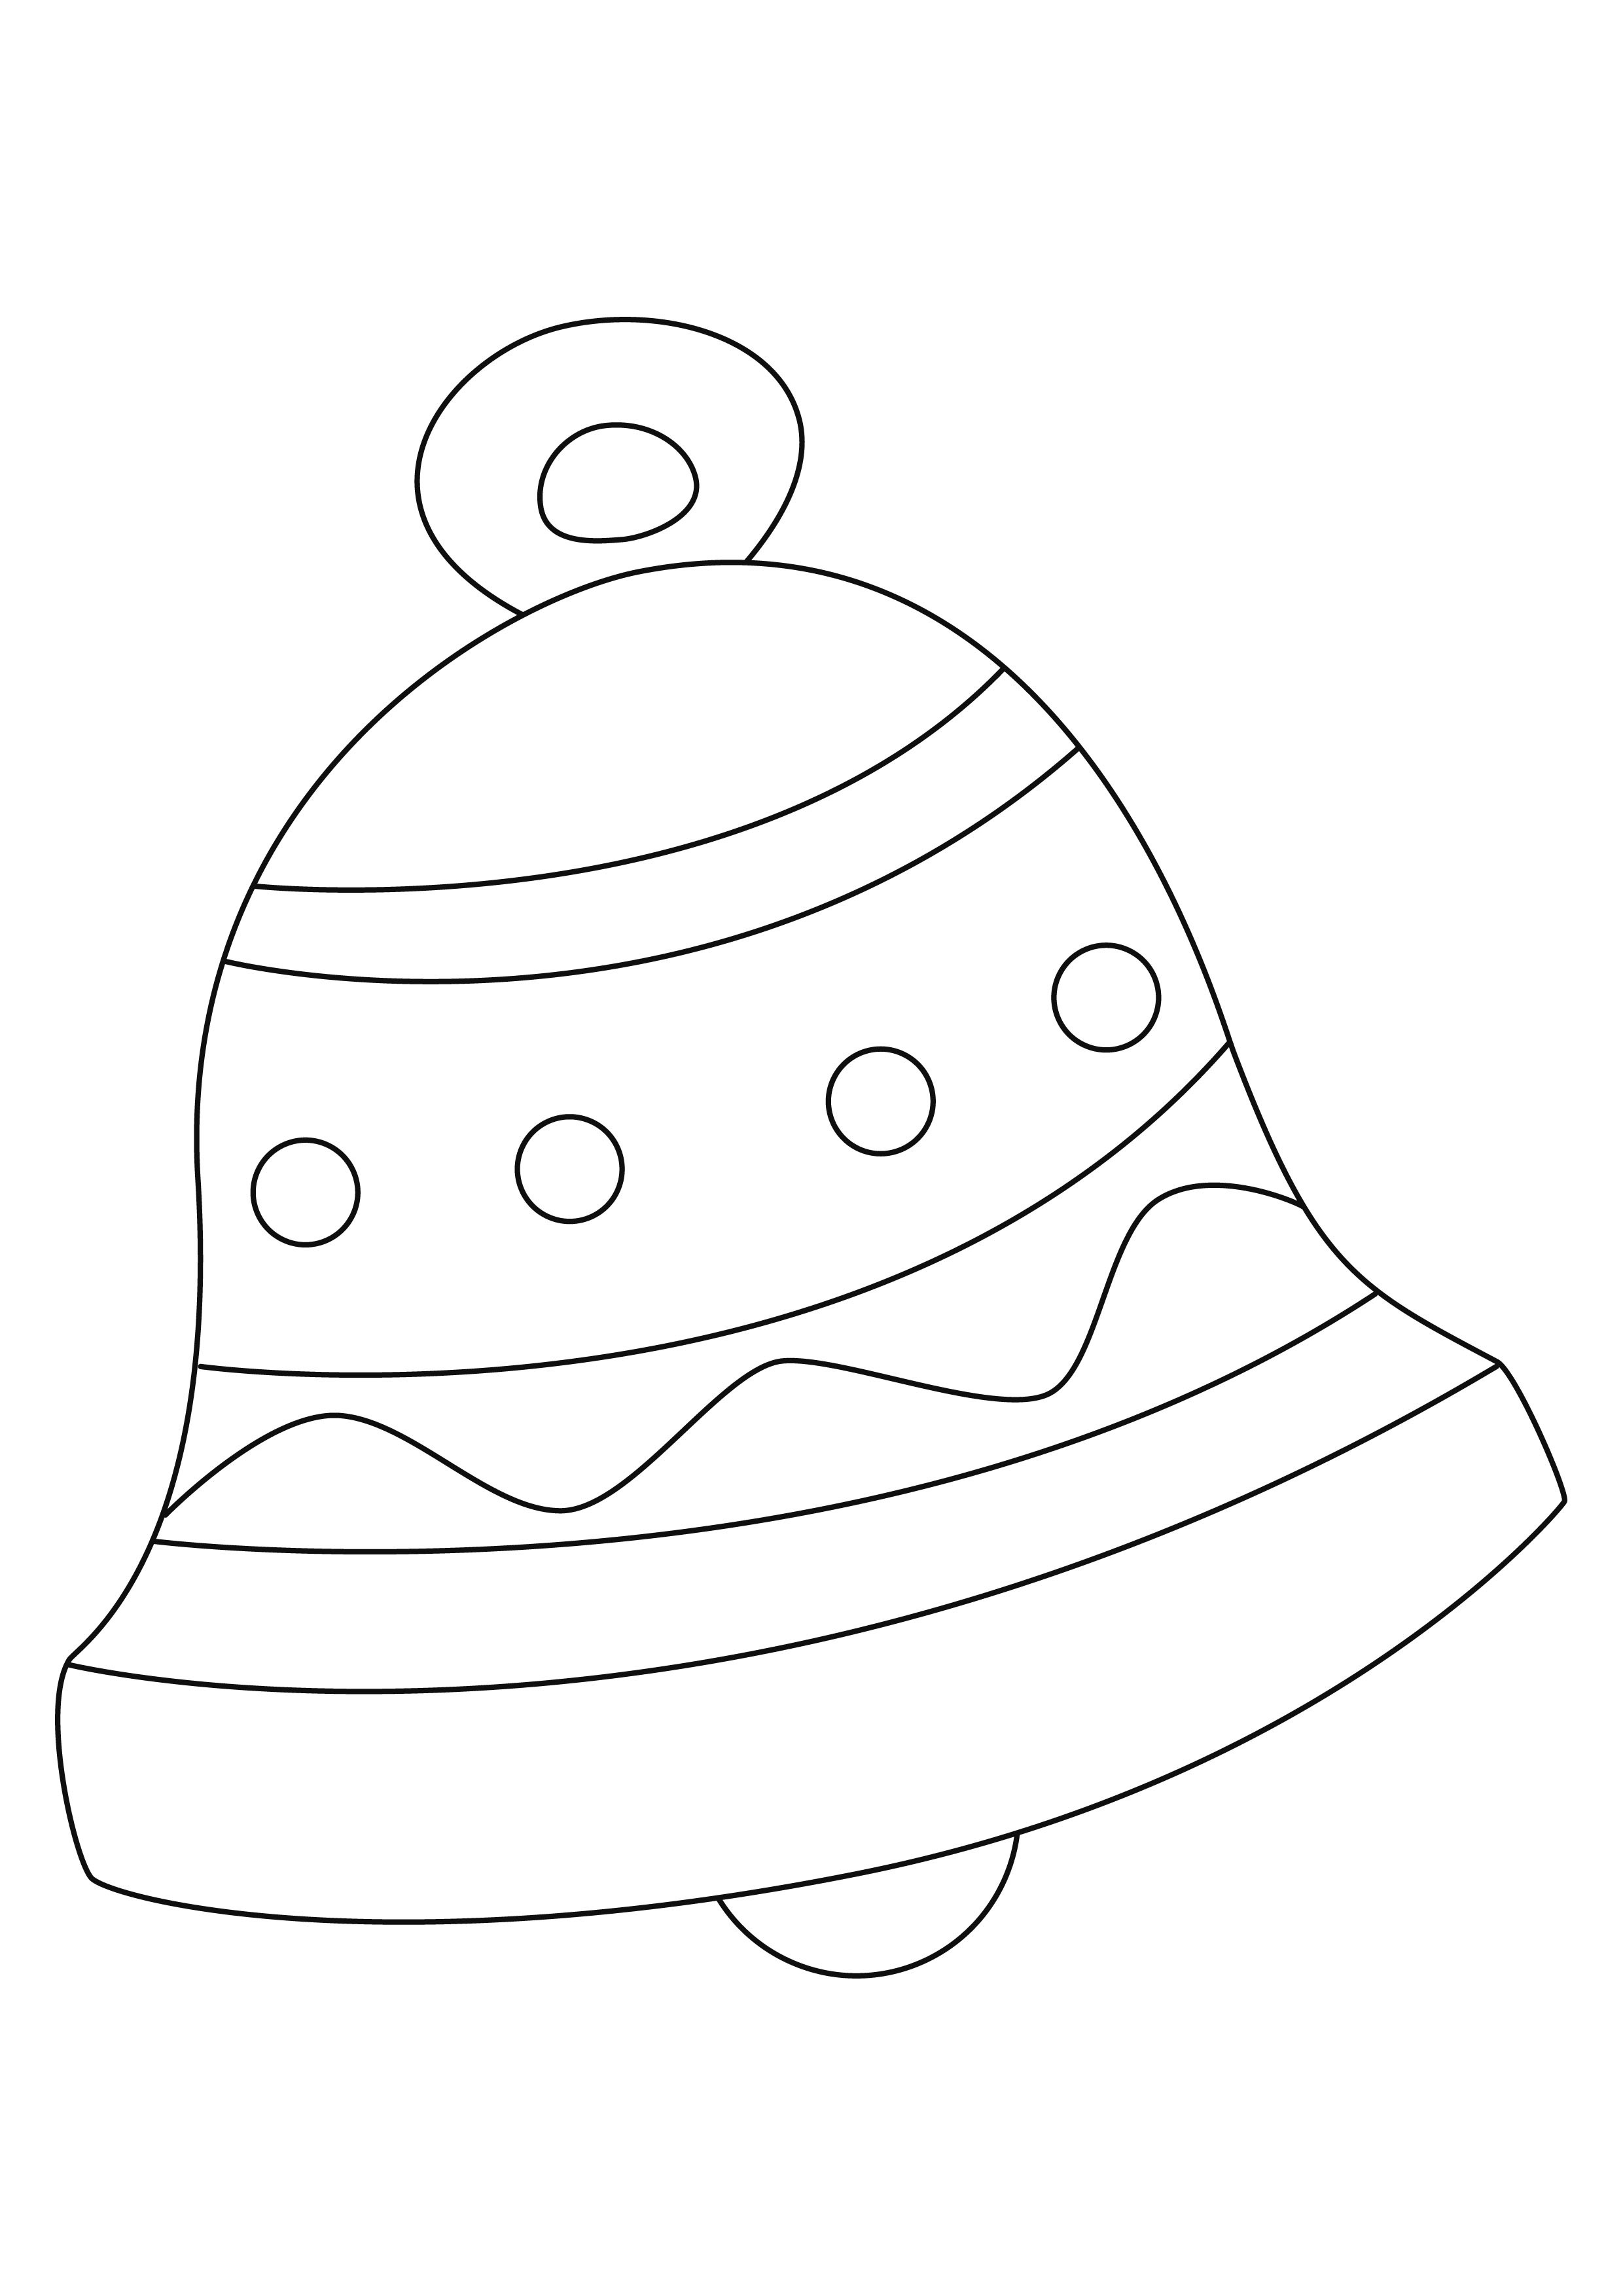 Coloriage p ques cloches 05 10 doigts - Coloriage cloche ...